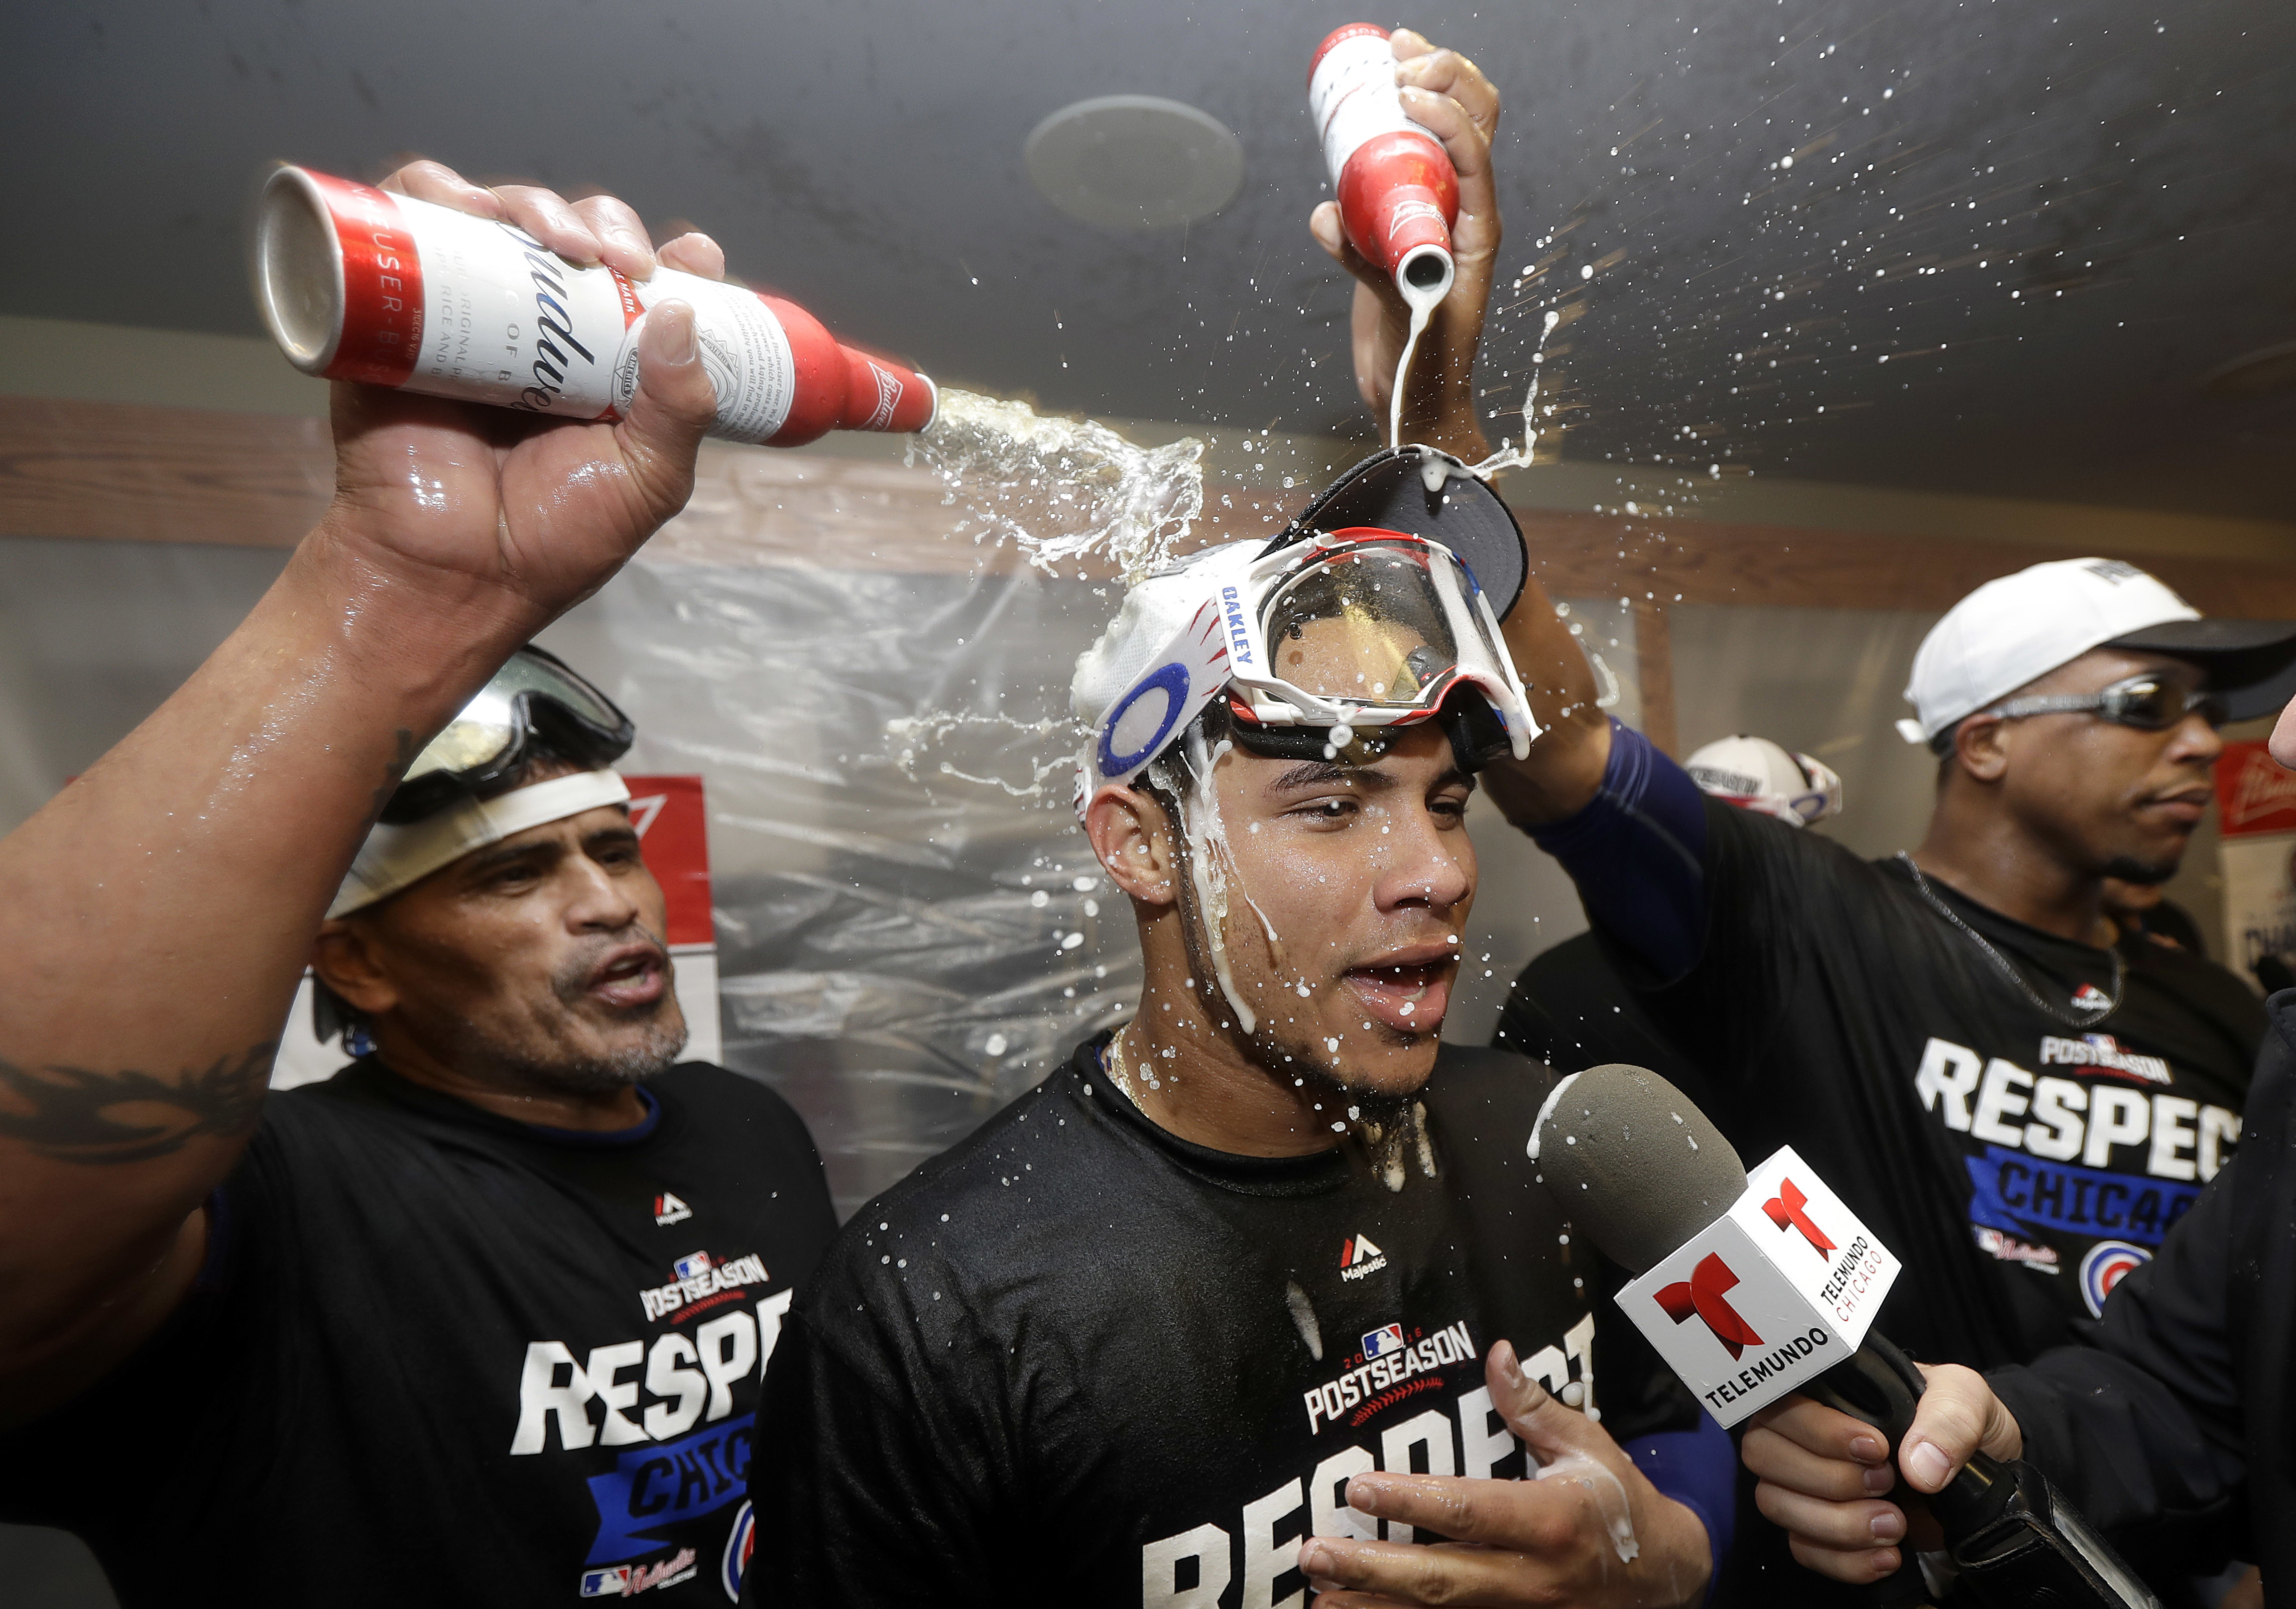 Chicago Cubs catcher Willson Contreras, center, has beer poured on him in the locker room after Game 4 of baseball's National League Division Series against the San Francisco Giants in San Francisco, Tuesday, Oct. 11, 2016. The Cubs won 6-5. (AP Photo/Mar